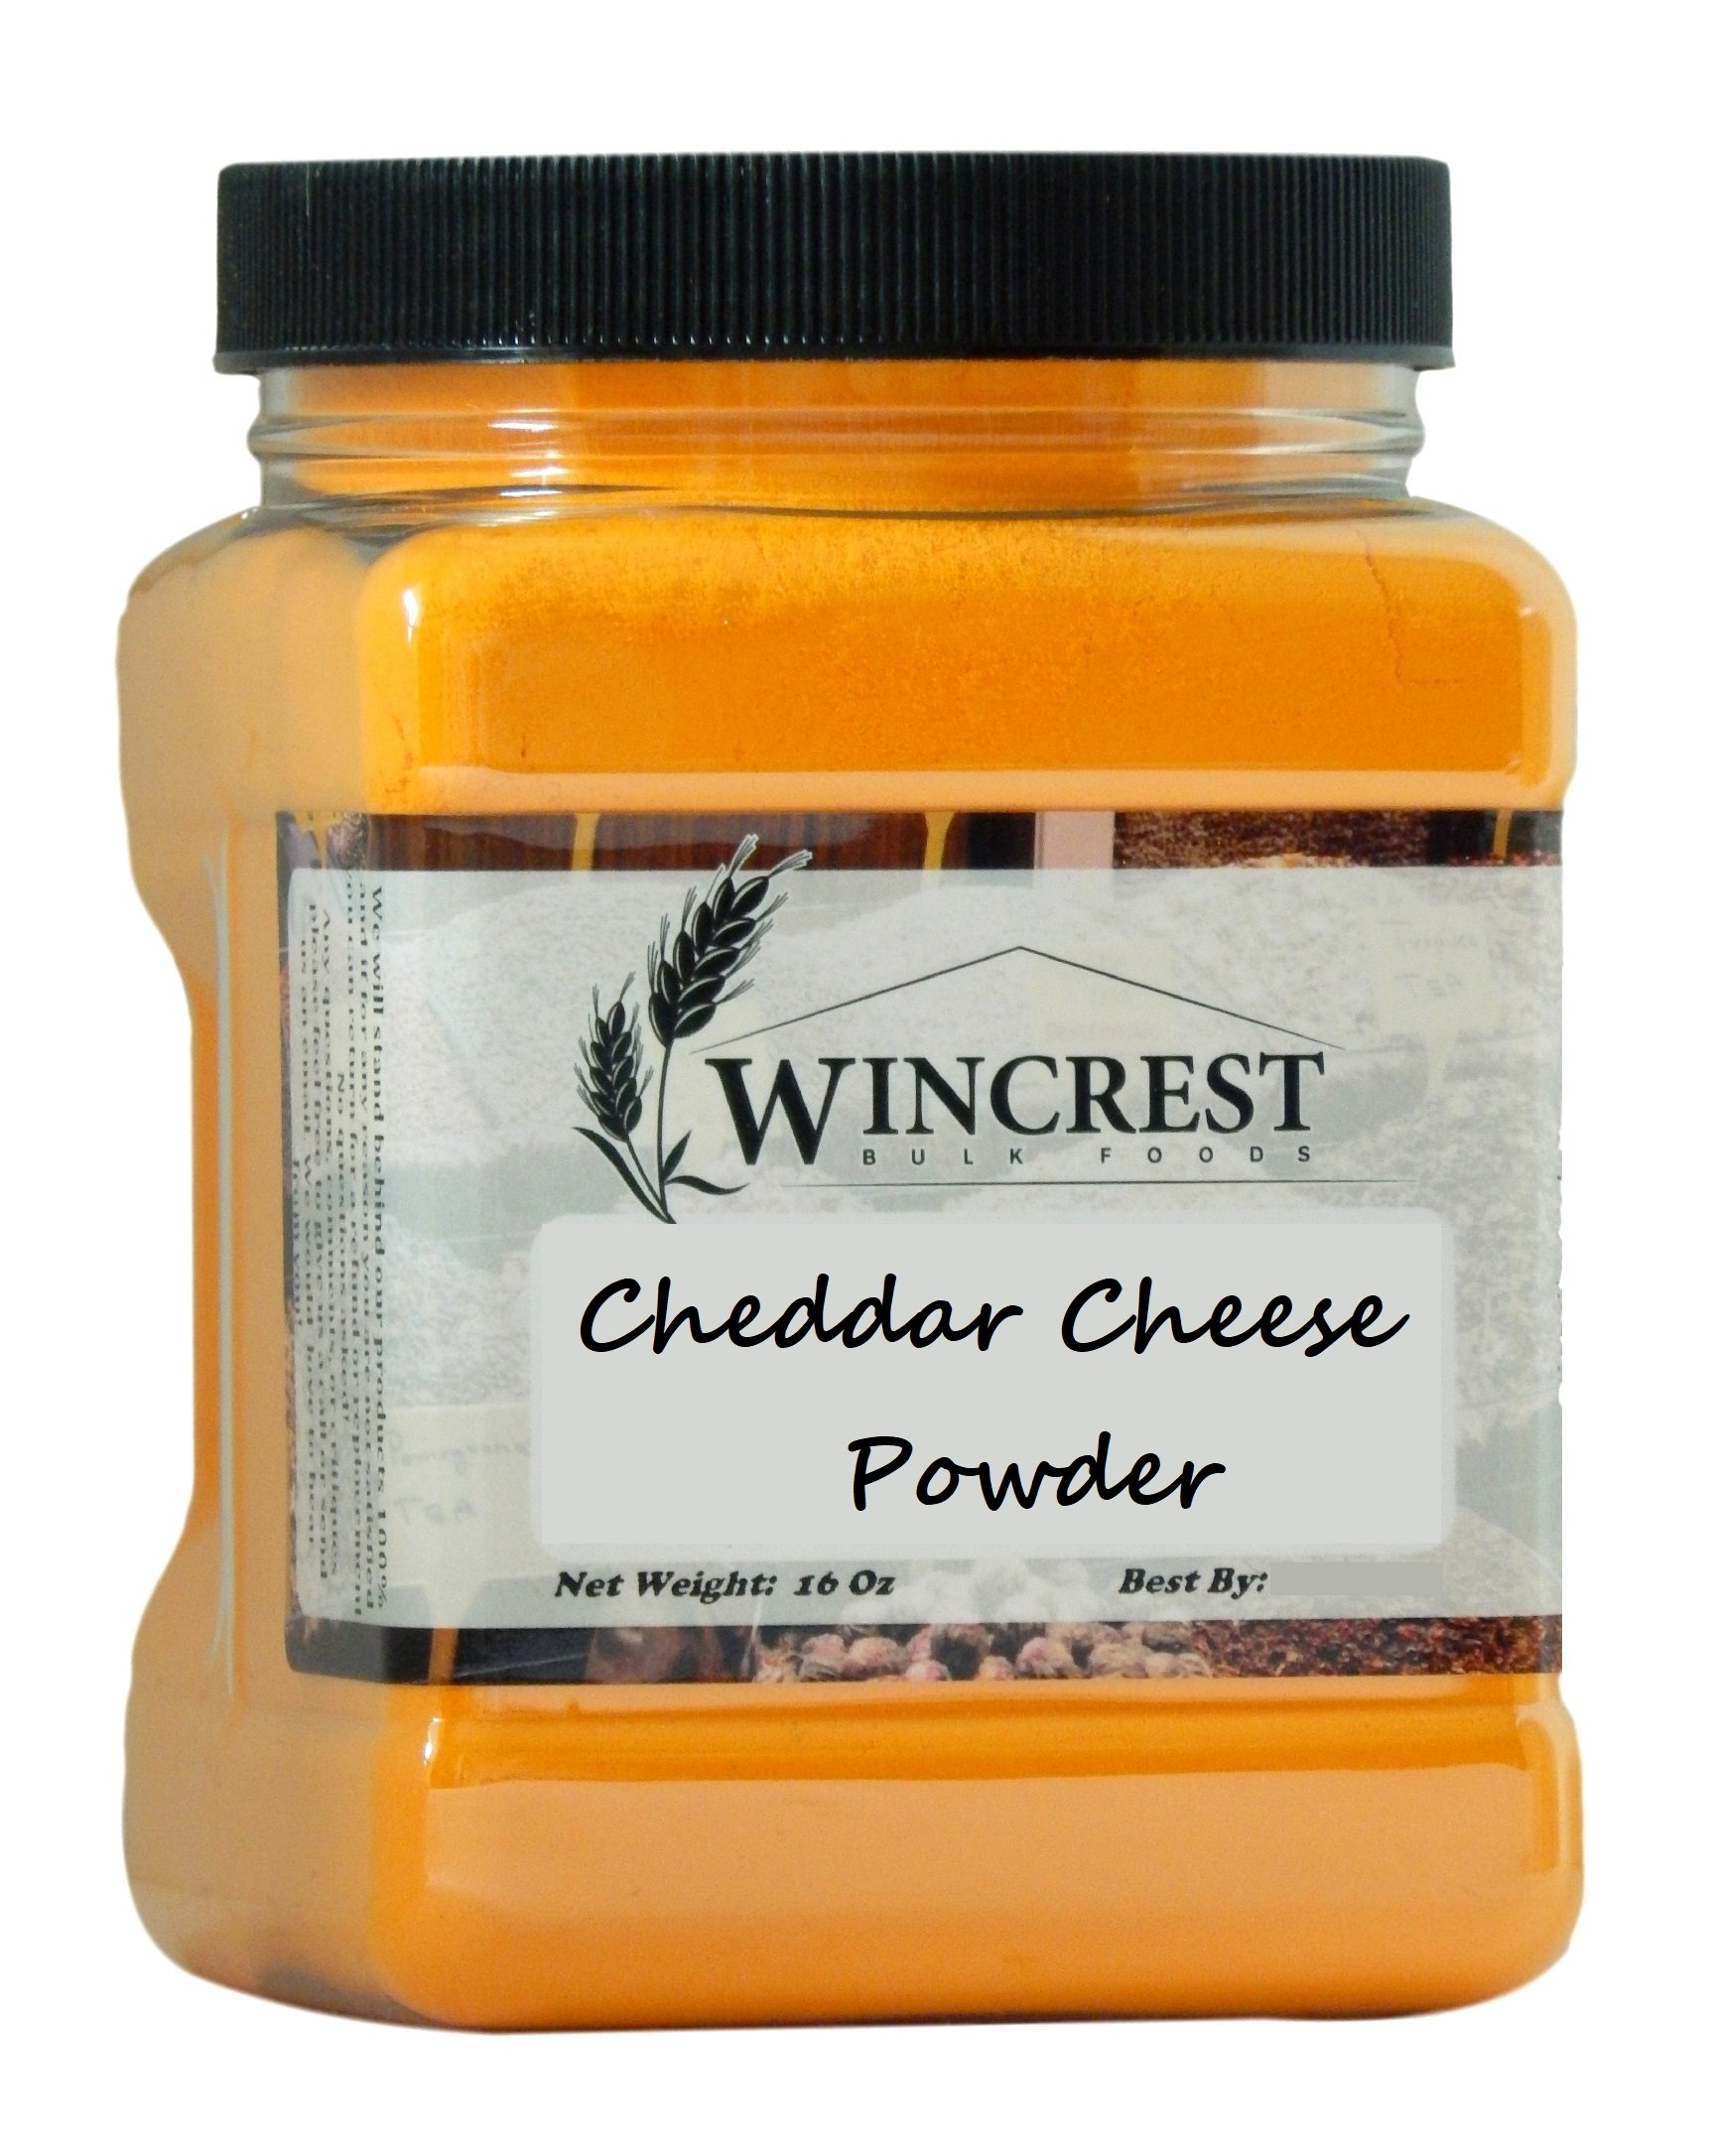 Cheddar Cheese Powder by WinCrest BulkFoods (Image #1)